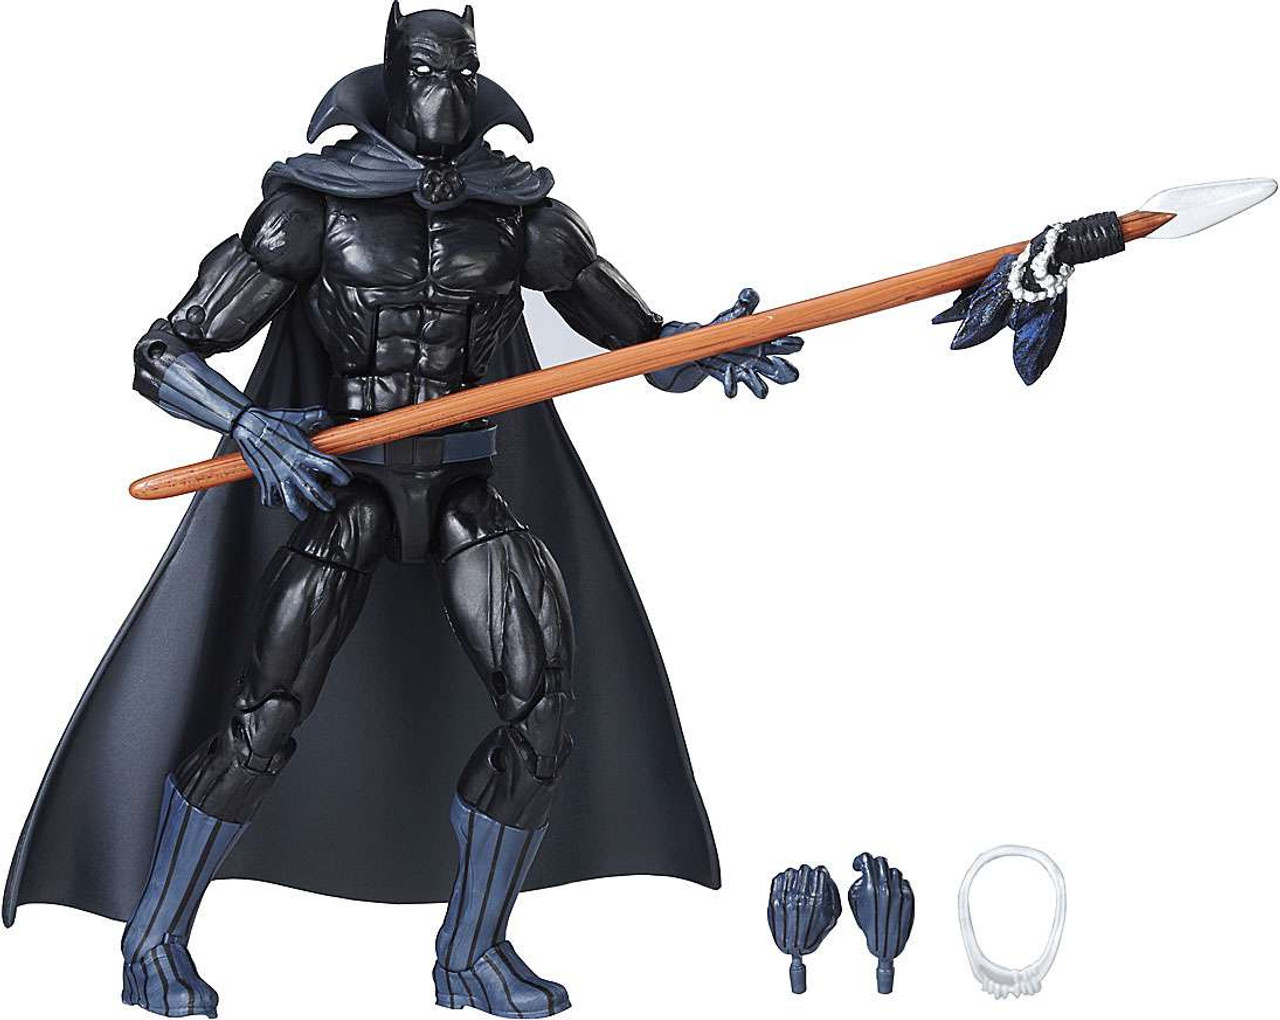 Definitely Not Walgreens exclusive Black Panther? - The Fwoosh Forums